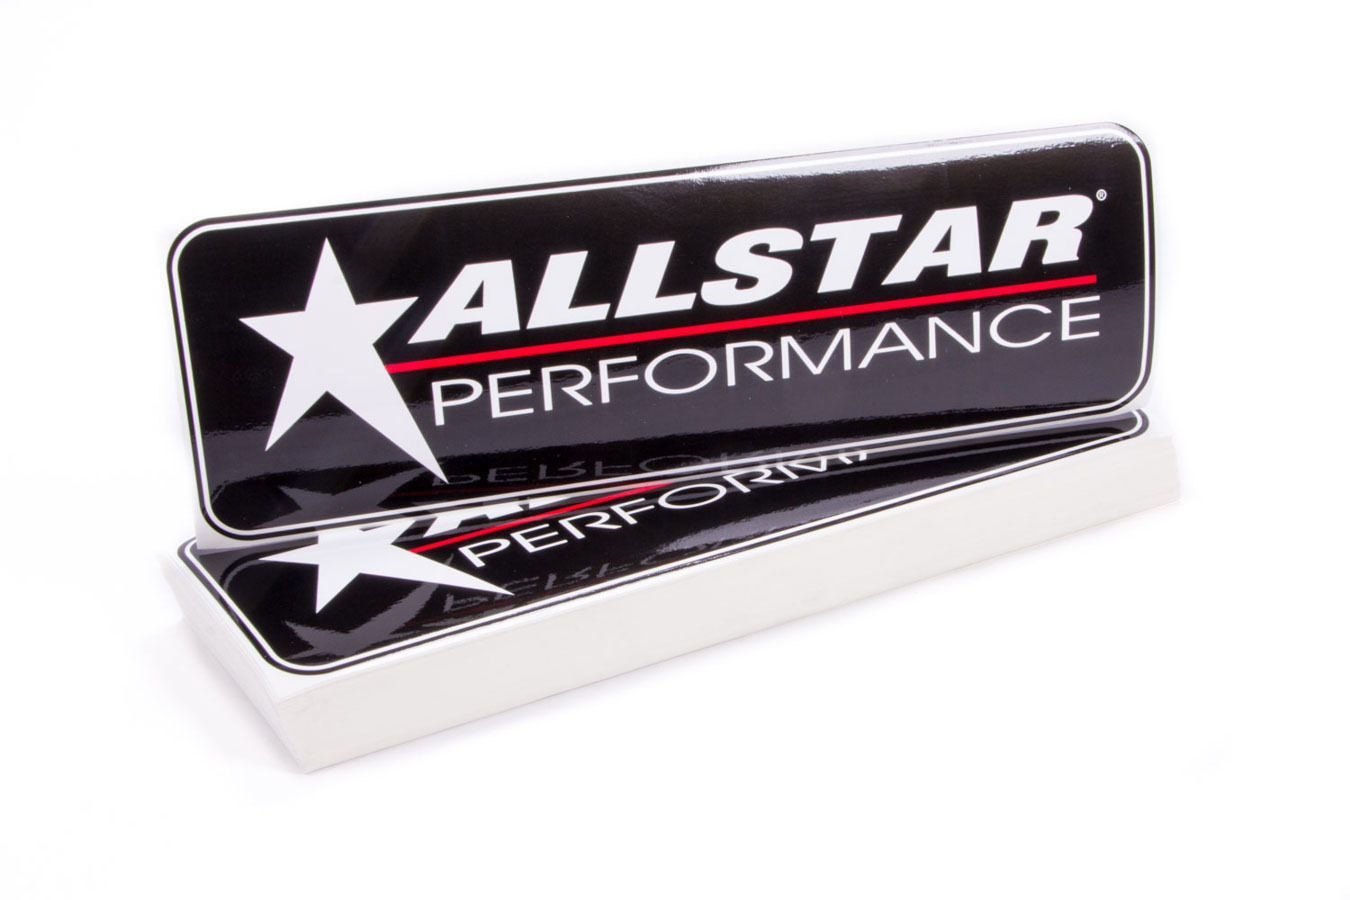 Allstar Performance  Decal 3x10 100pk